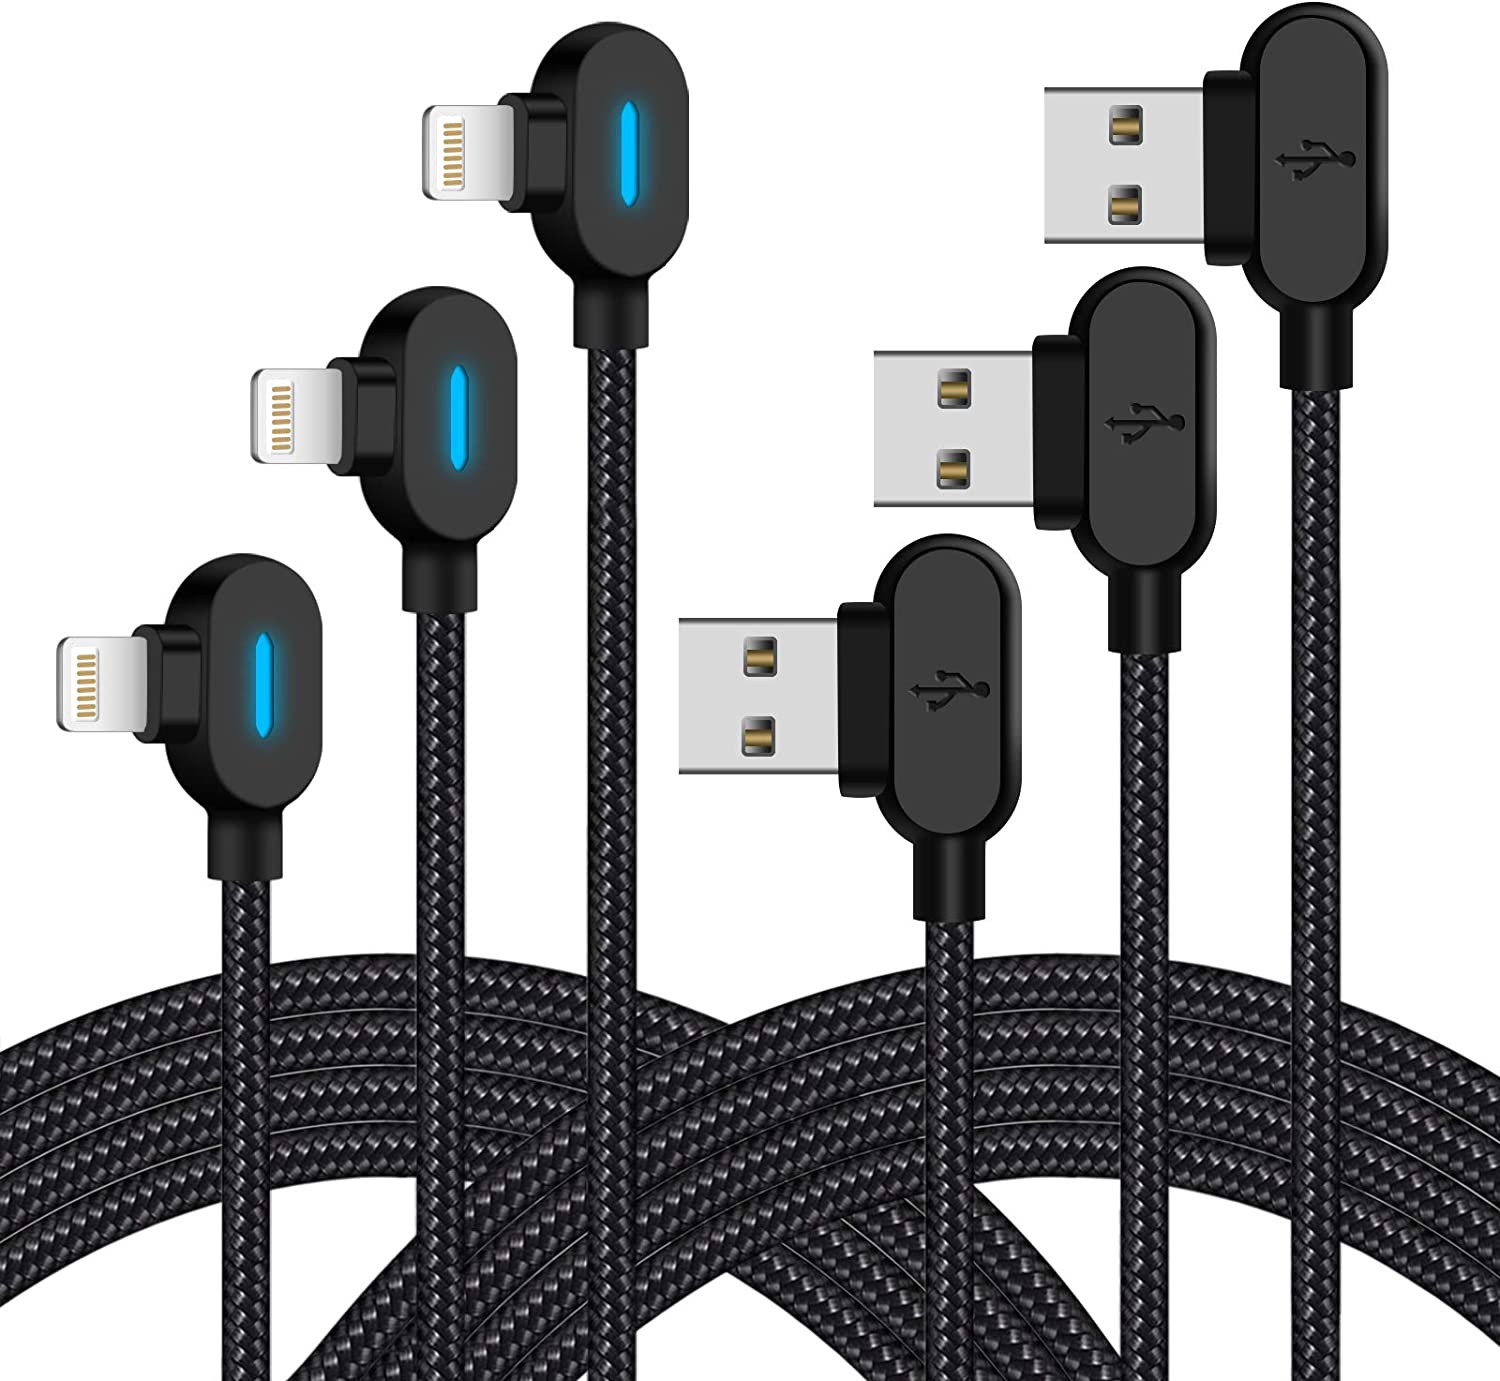 LED iPhone Charger Cable 10 FT 3Pack Right Angle Lightning Cable 90 Degree Nylon Braided Charging Cord Gaming USB Charging/Sync Compatible with iPhone Xs MAX XR X 8 7 6S 6 Plus SE 5S 5C 5, iPad, iPod